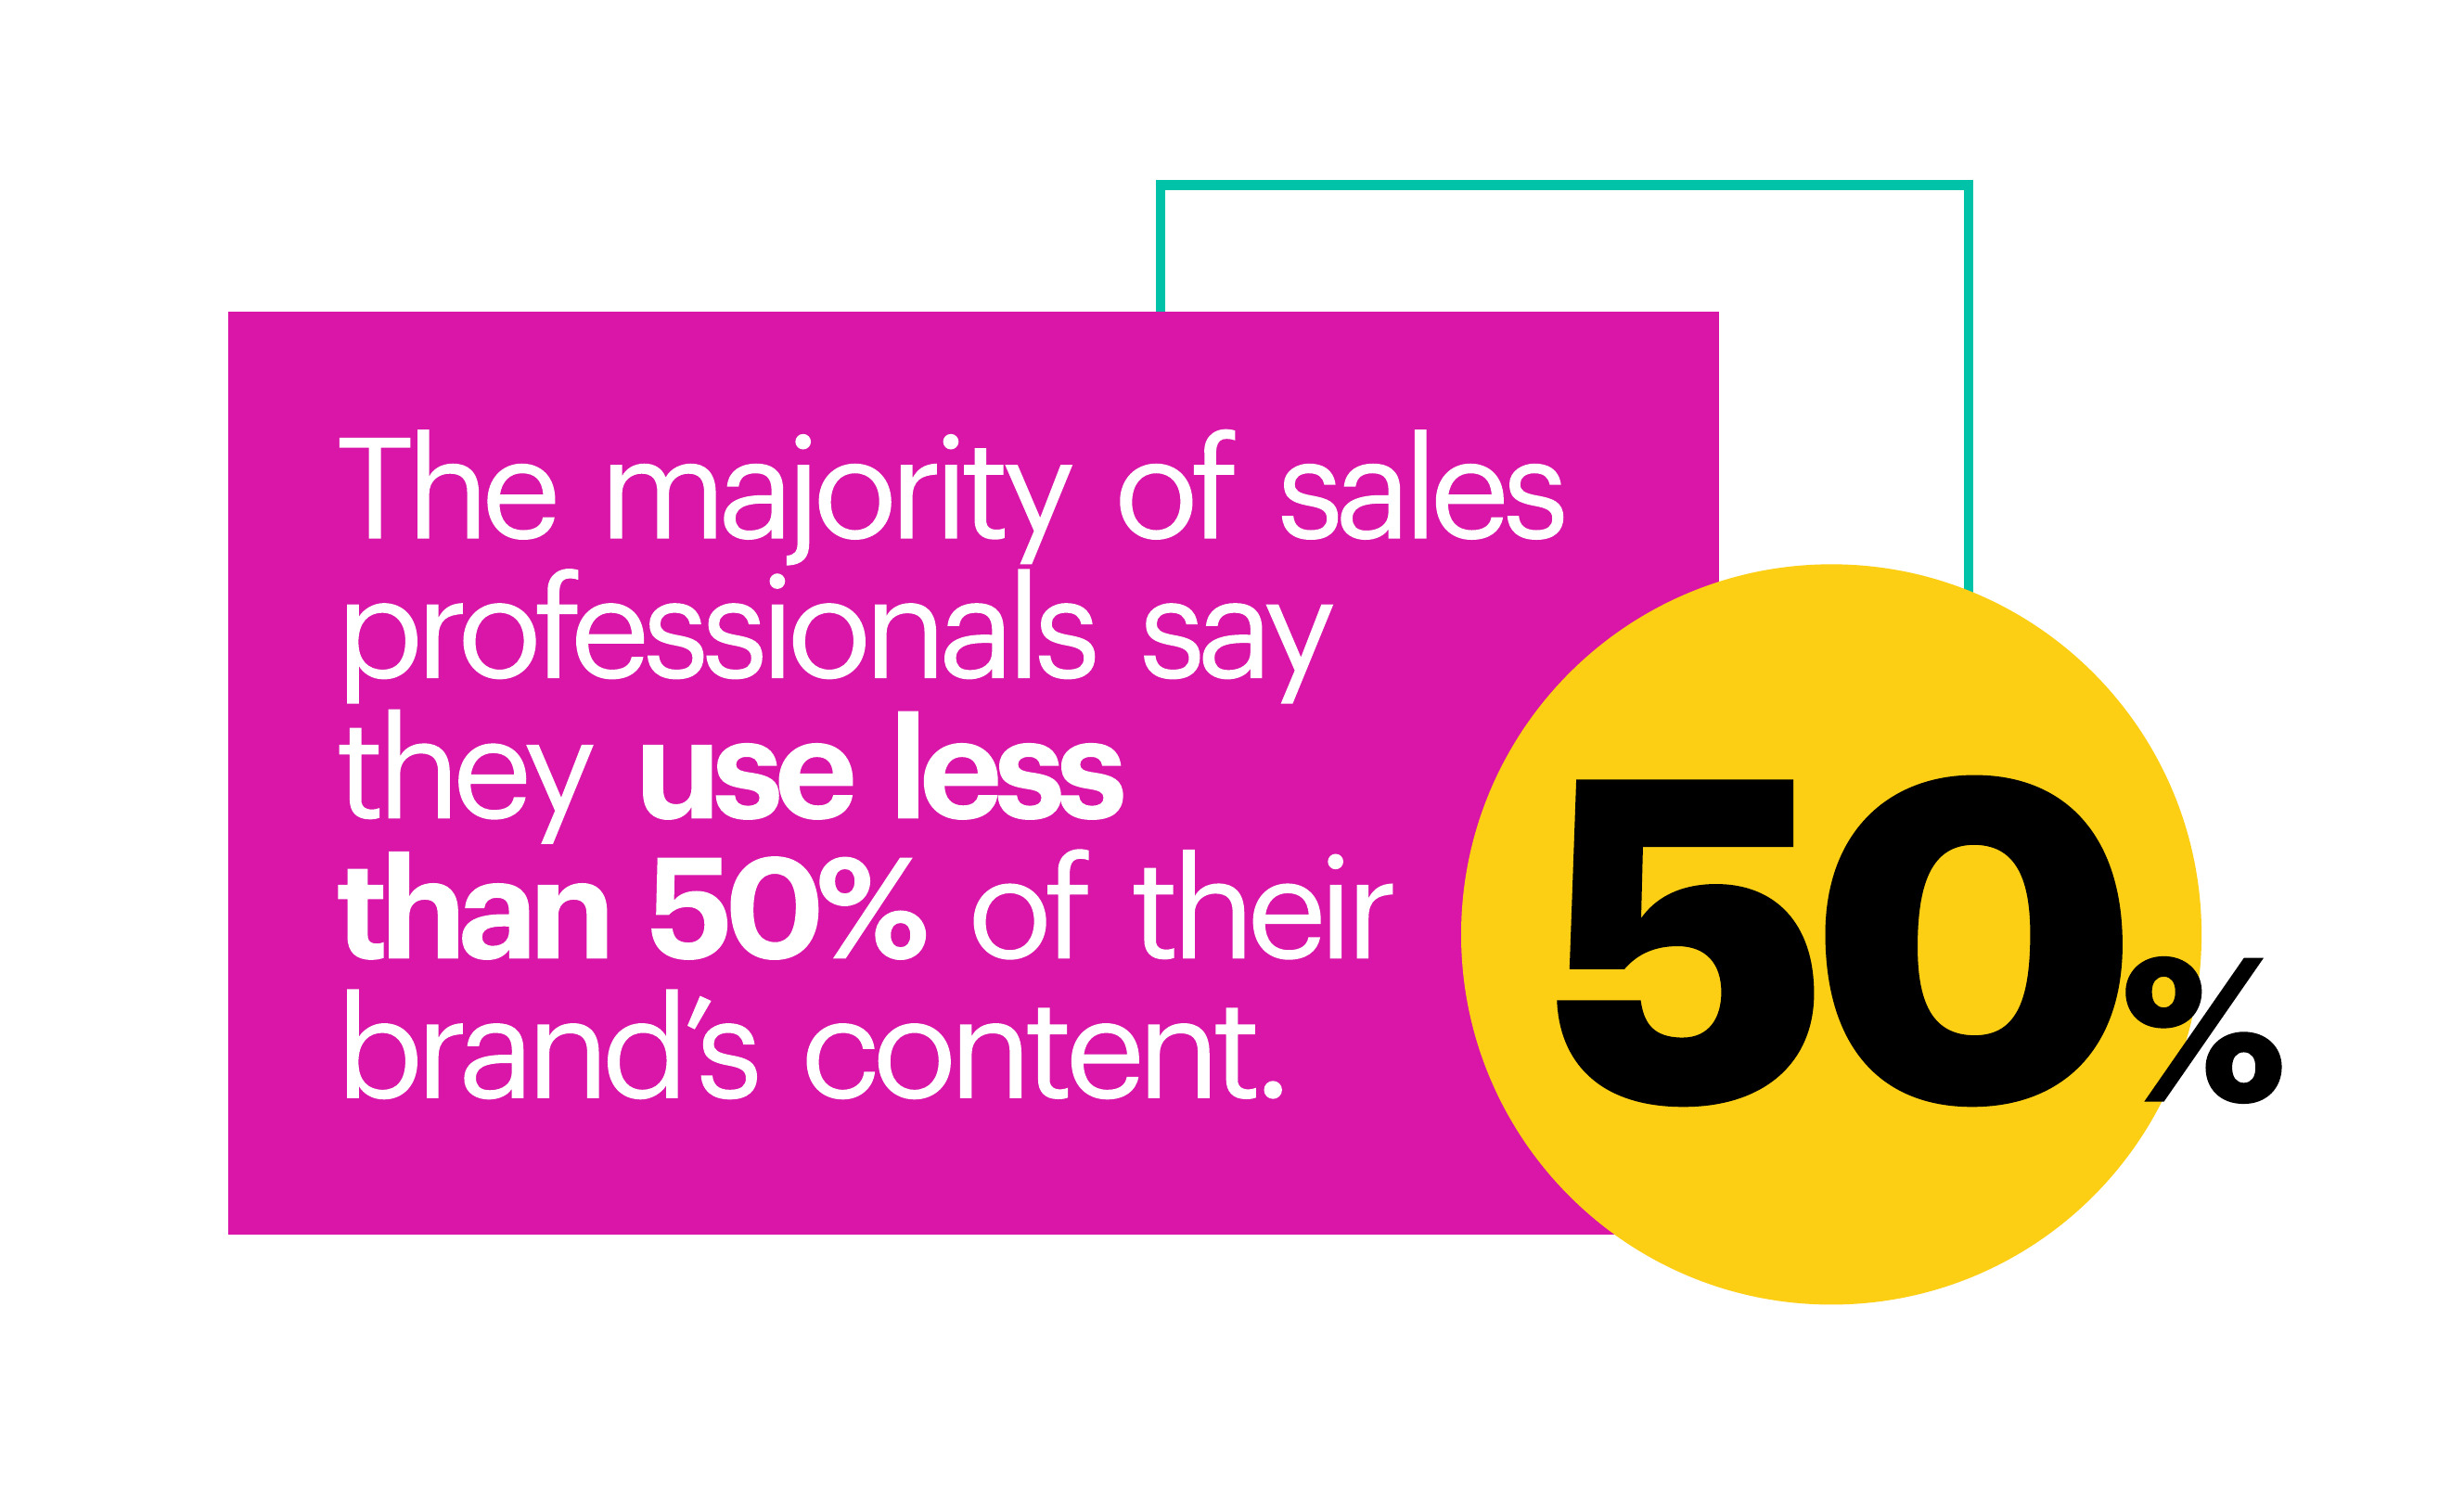 The majority of sales professionals say they use less than 50% of their brand's content.